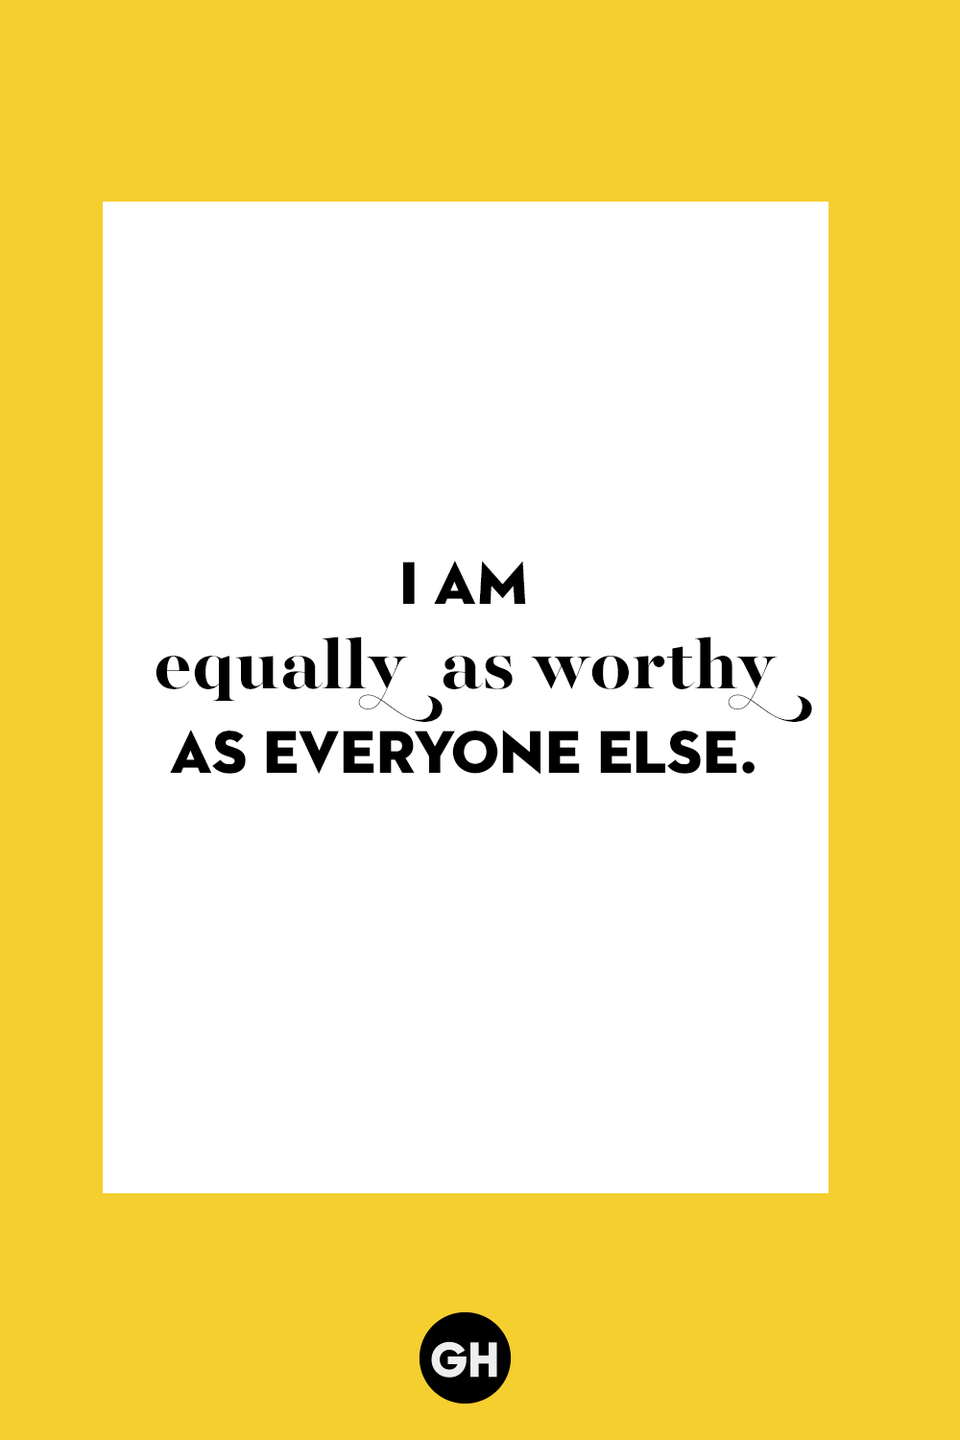 <p>I am equally as worthy as everyone else.</p>